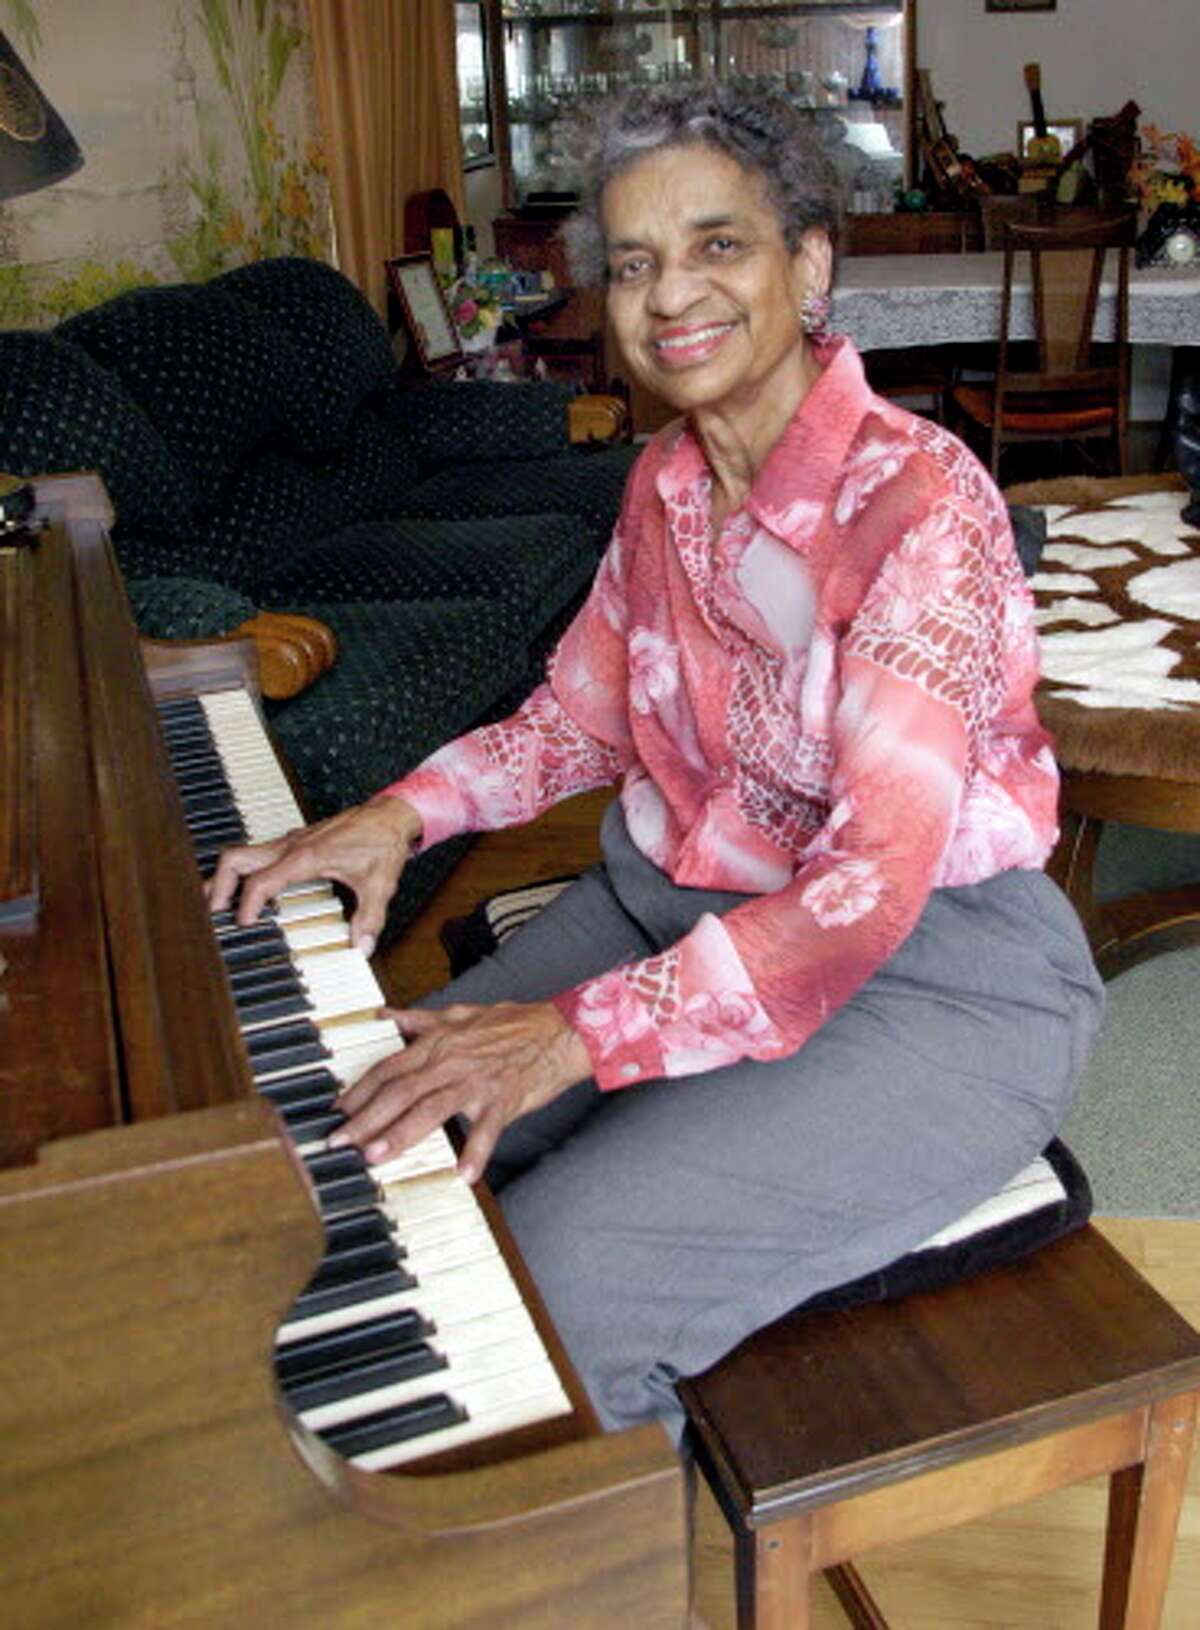 Izola Collins is shown playing piano at her home in Galveston. Collins, an educator, musician and author, was selected by the Galveston Historical Foundation as its 2006